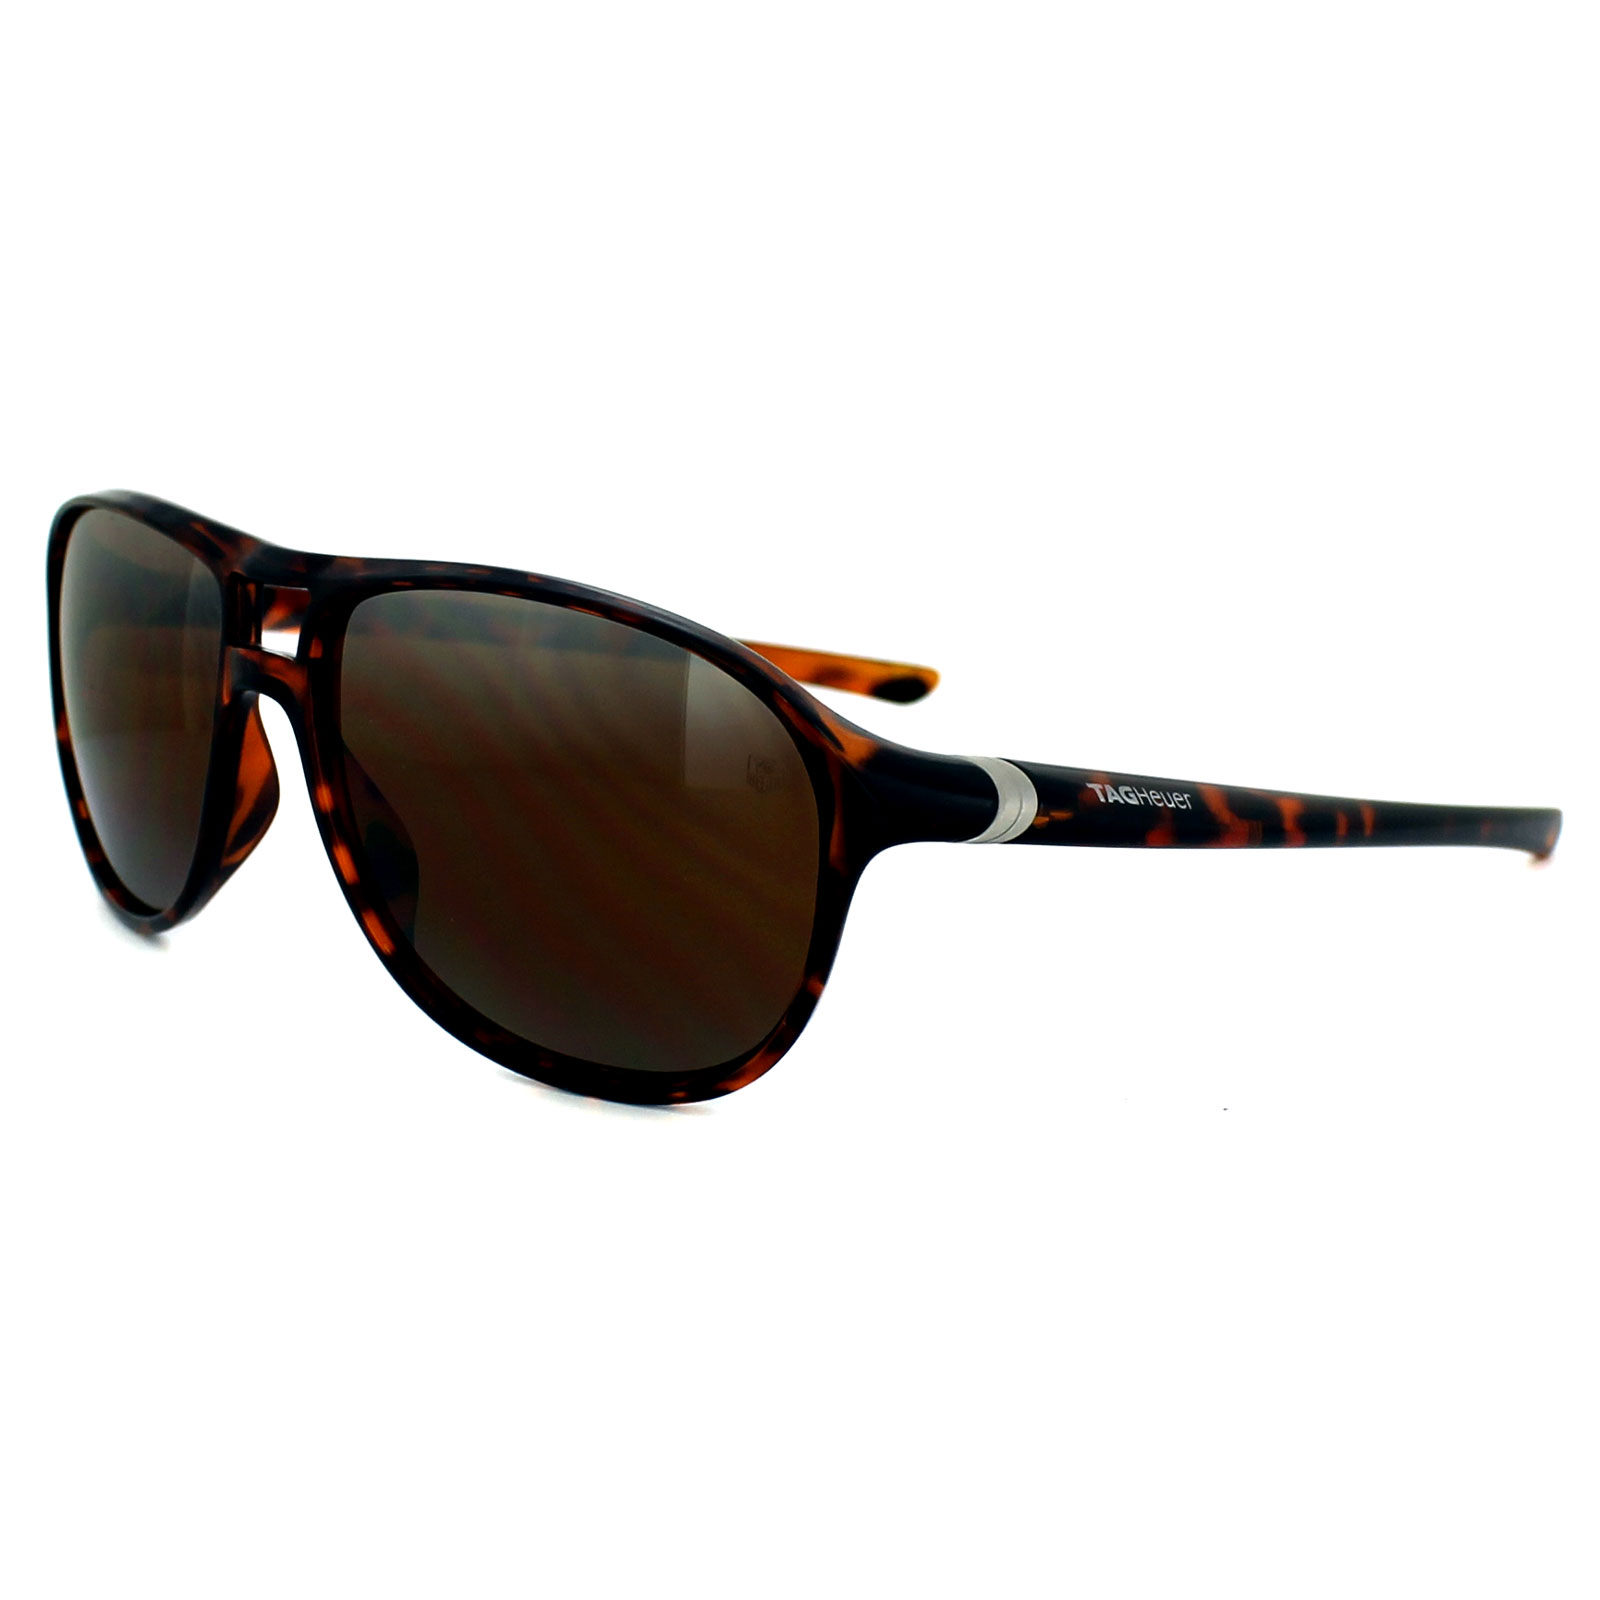 fbe4b43ae8 Tag Heuer Sunglasses 27 Degree 6043 211 Shiny Tortoise Outdoor Brown ...